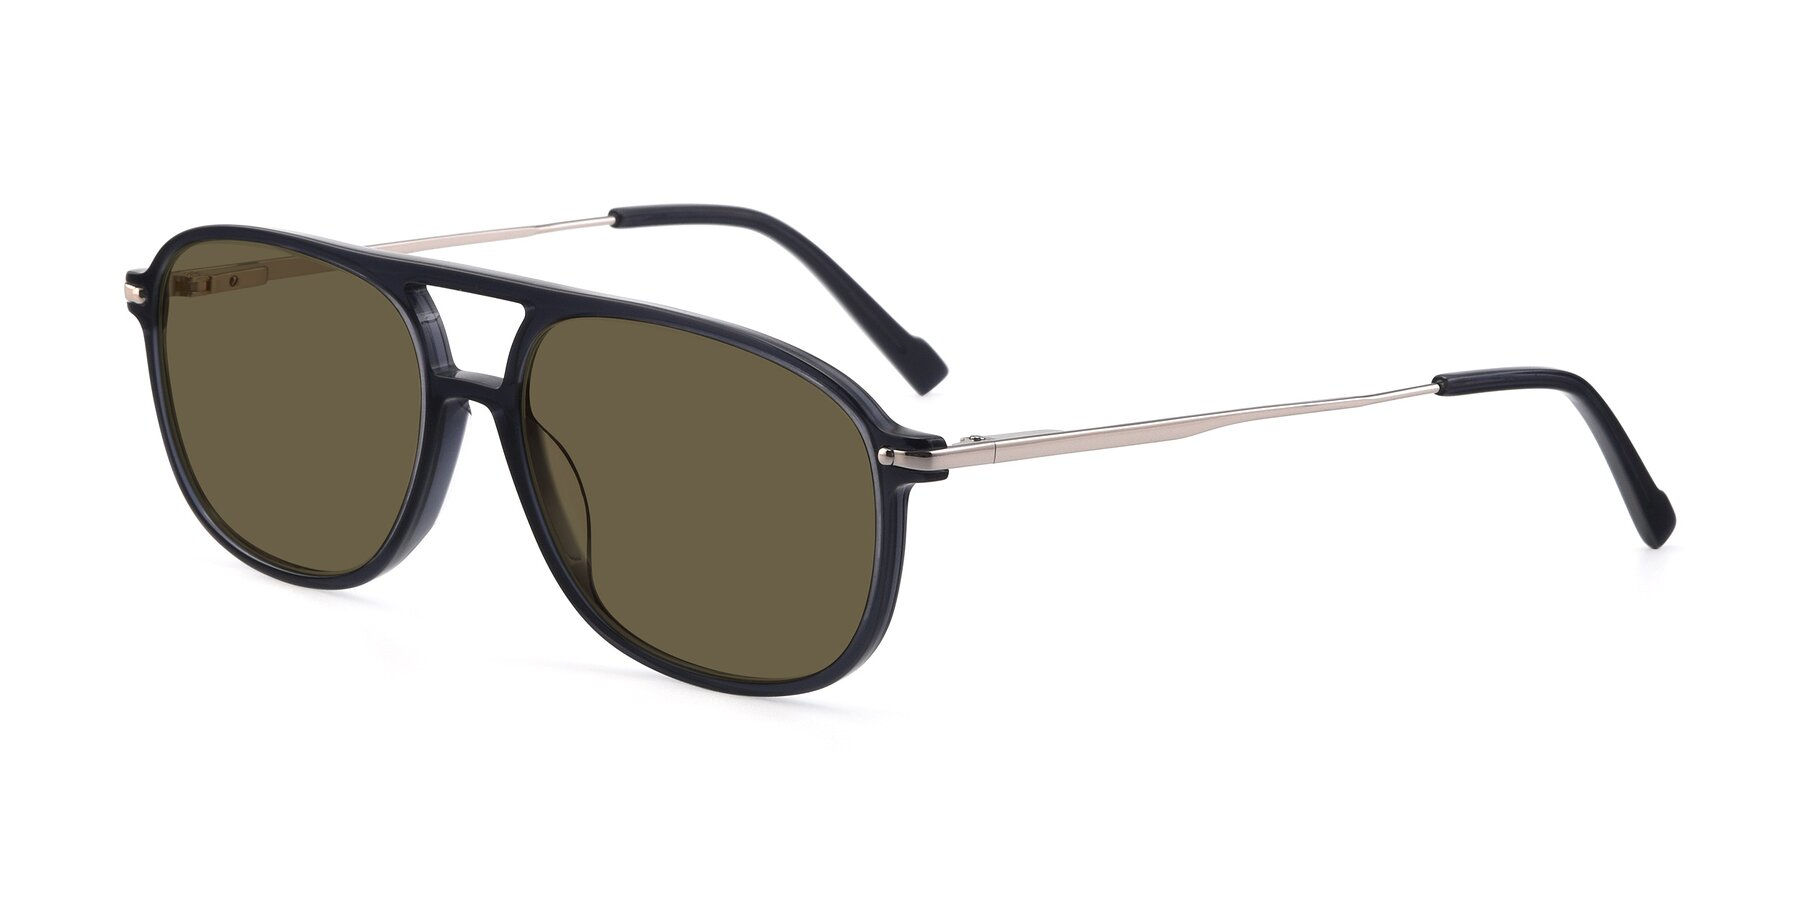 Angle of 17580 in Dark Bluish Gray with Brown Polarized Lenses